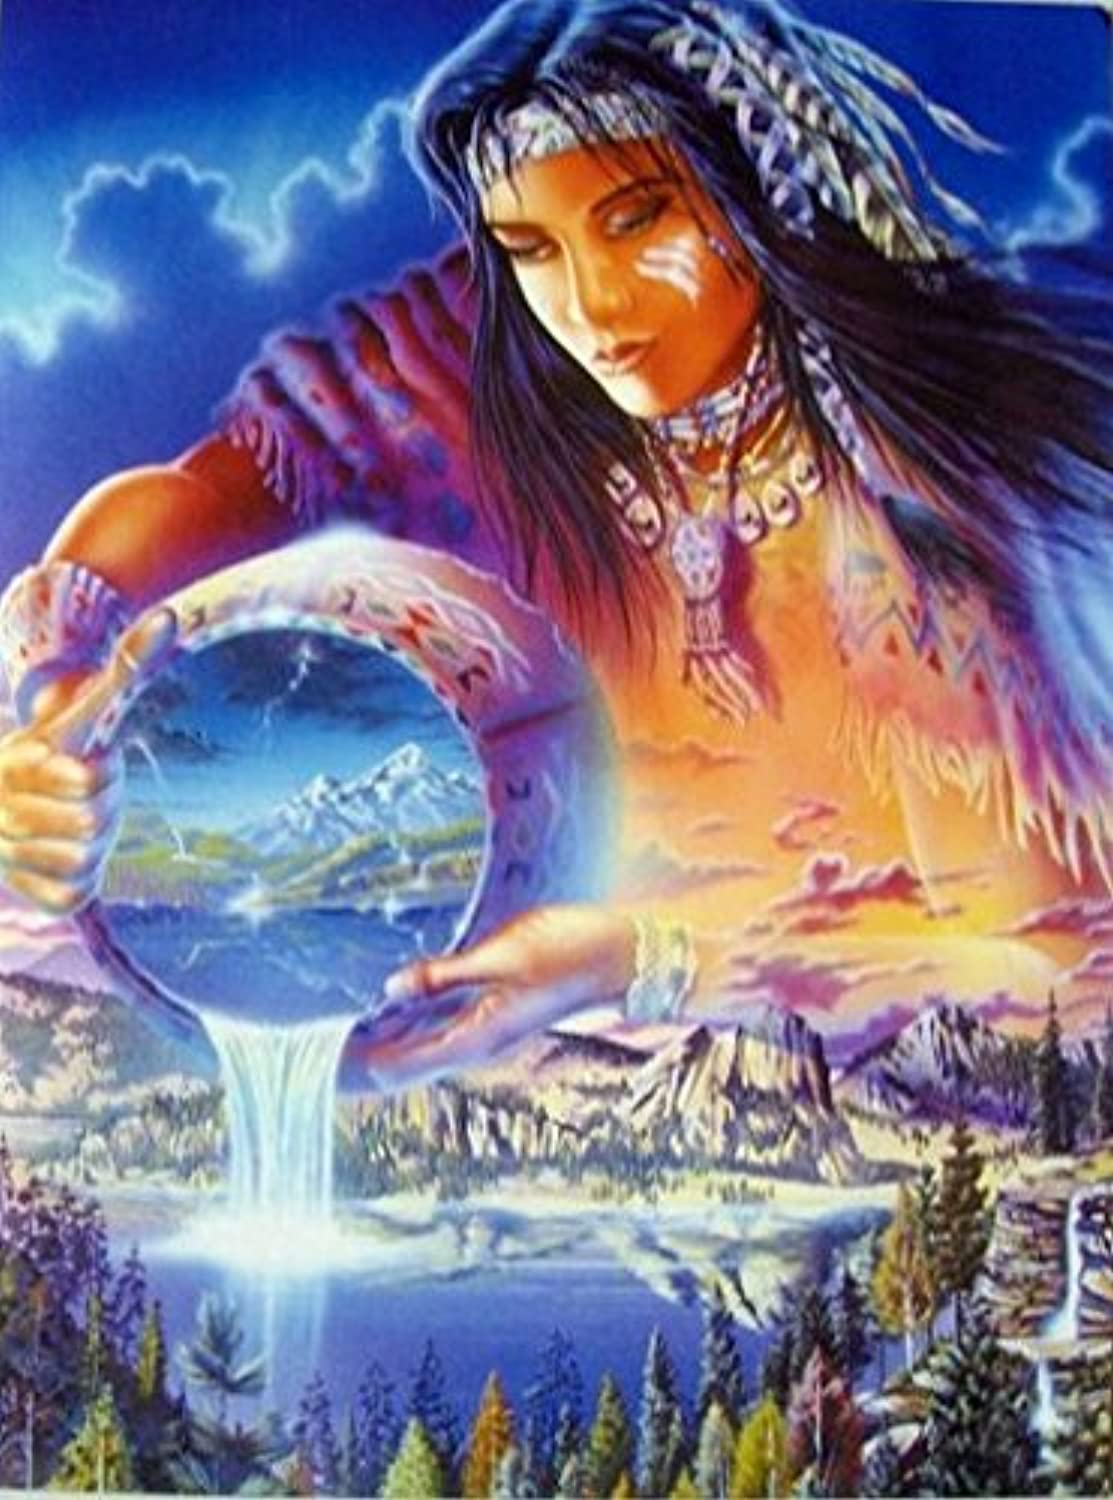 RAINMAKER Puzzle by David Penfound 500 Piece Jigsaw Puzzle Suns Out